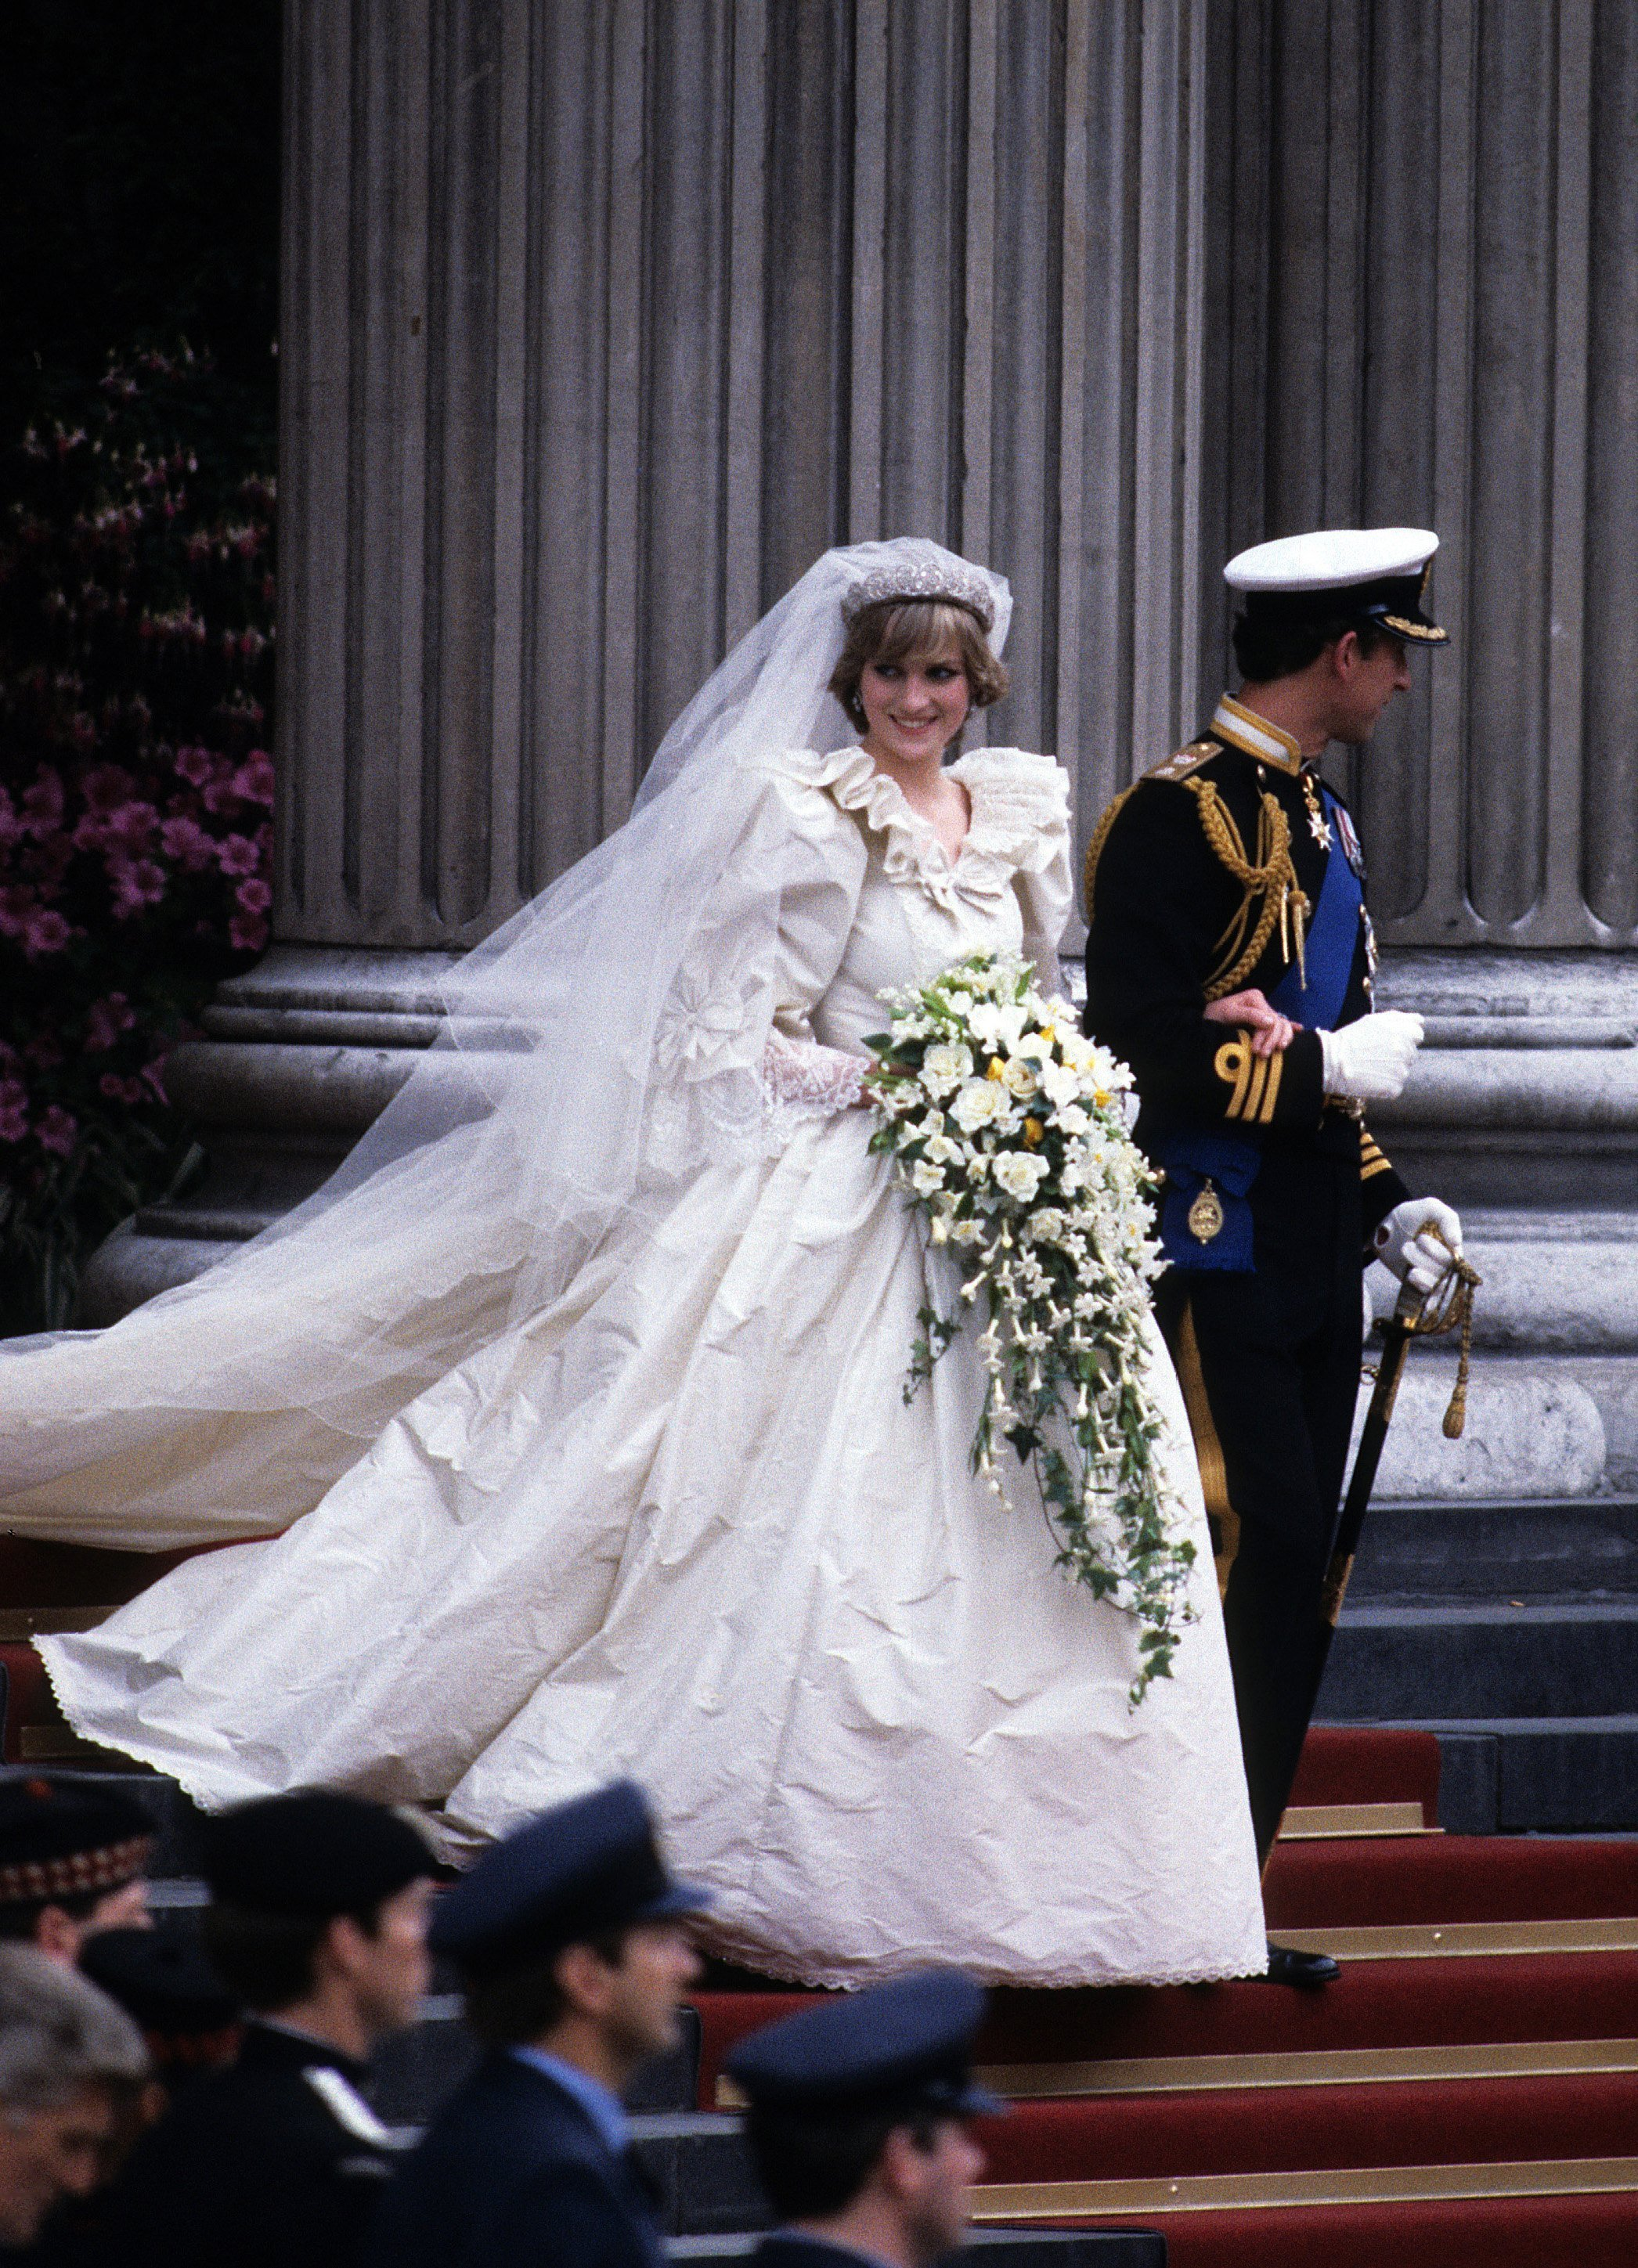 The wedding of Princess Diana and Prince Charles in 1981 | Photo: Getty Images